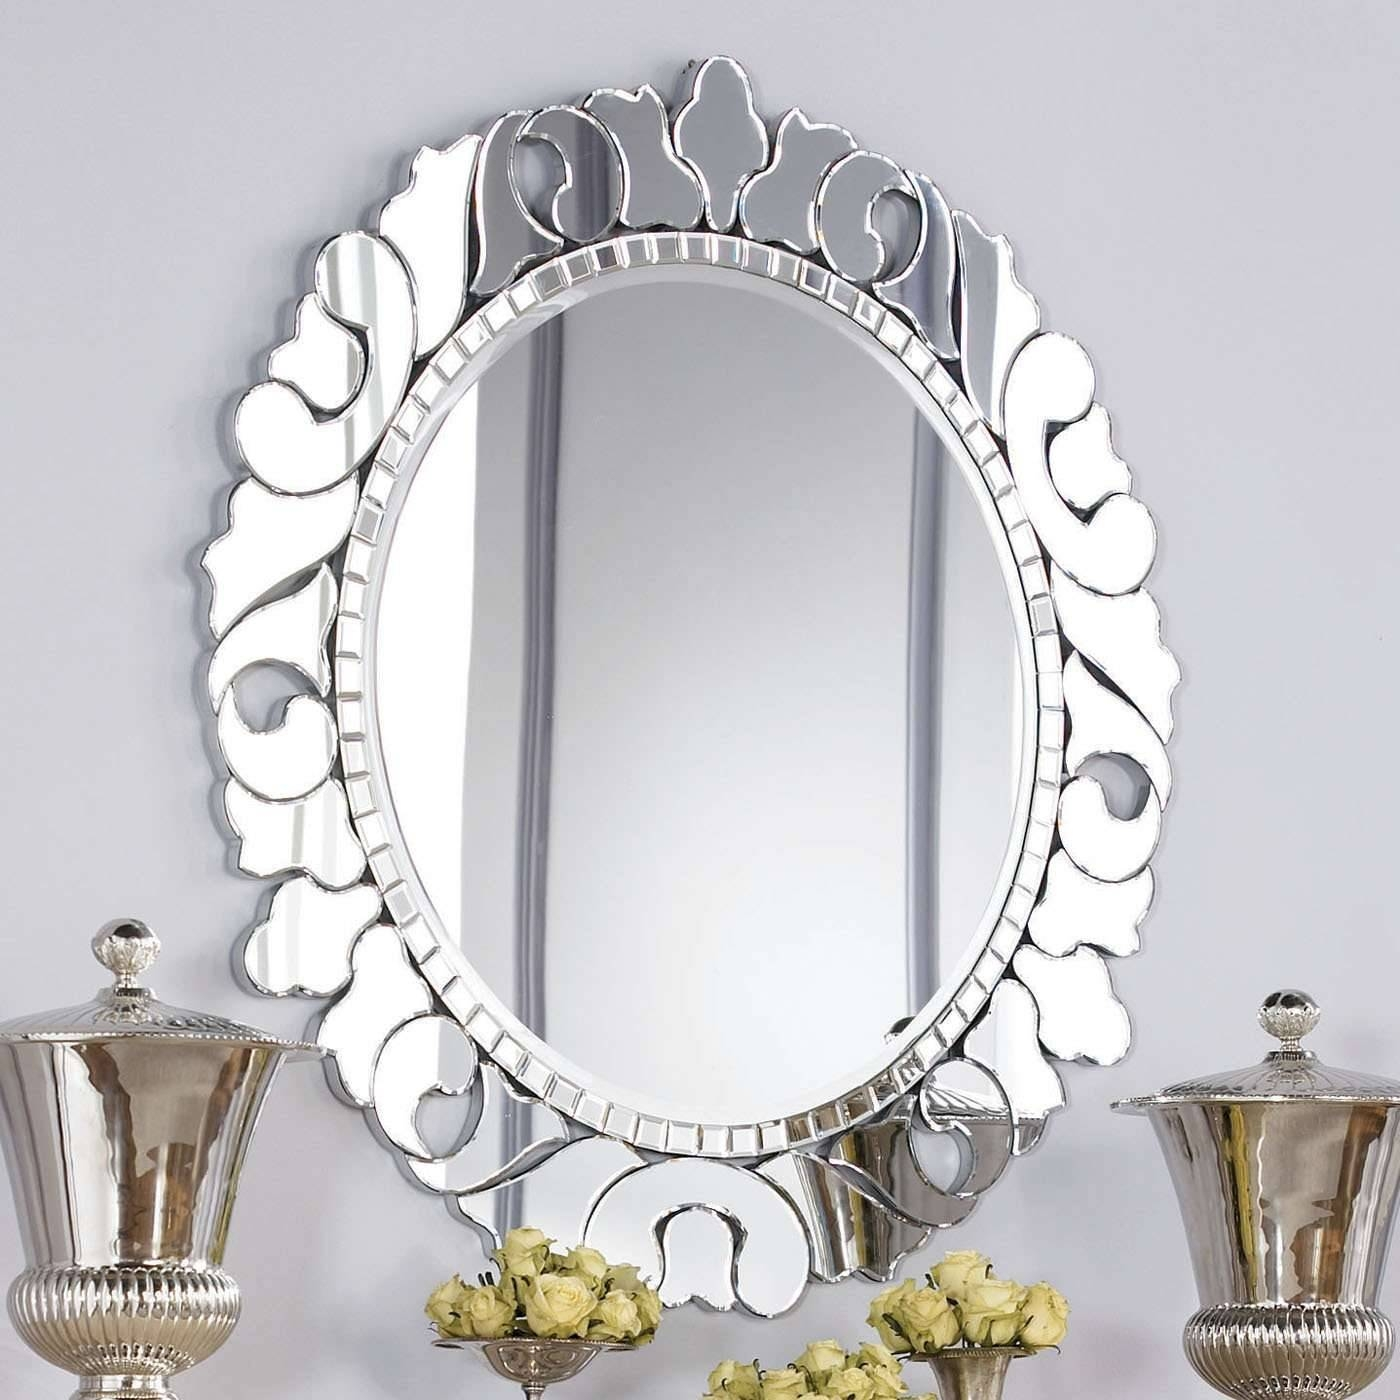 25 inspirations of venetian style wall mirrors venetian wall mirror antique venetian mirror furniture mirror regarding venetian style wall mirrors image 21 amipublicfo Images